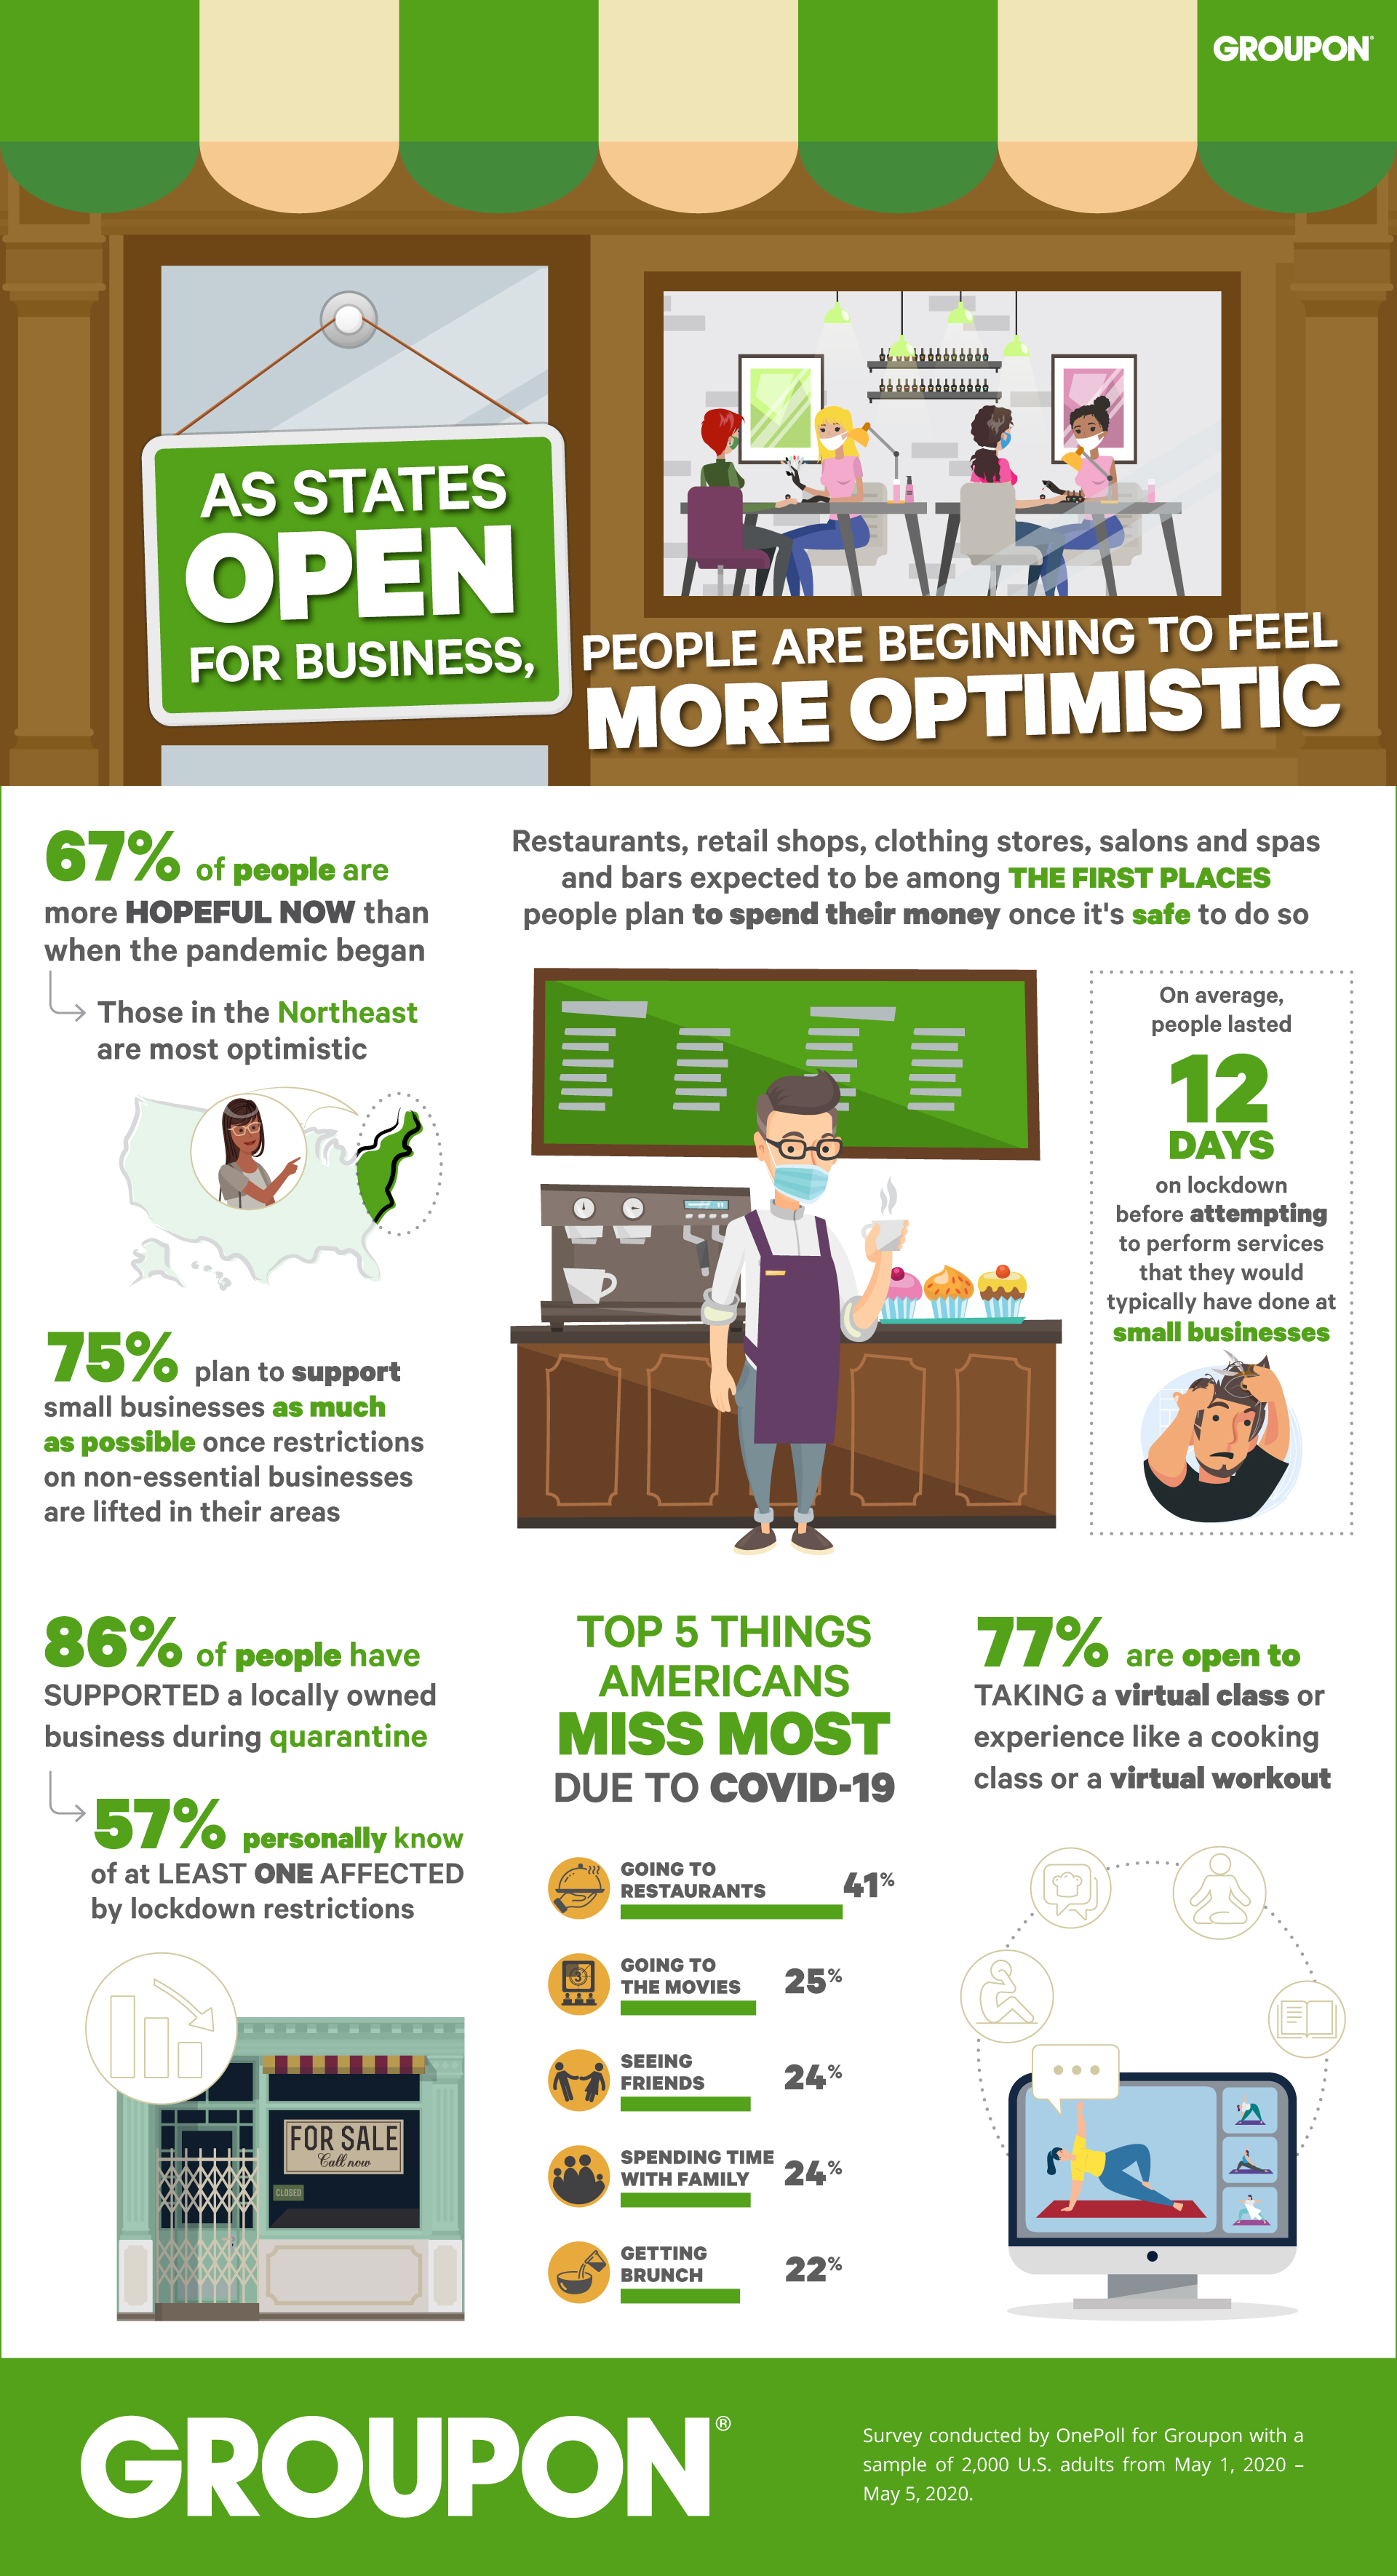 As States Open For Business A New Survey Finds The Majority Of Americans Feeling More Optimistic Looking To Support Small Businesses Business Wire